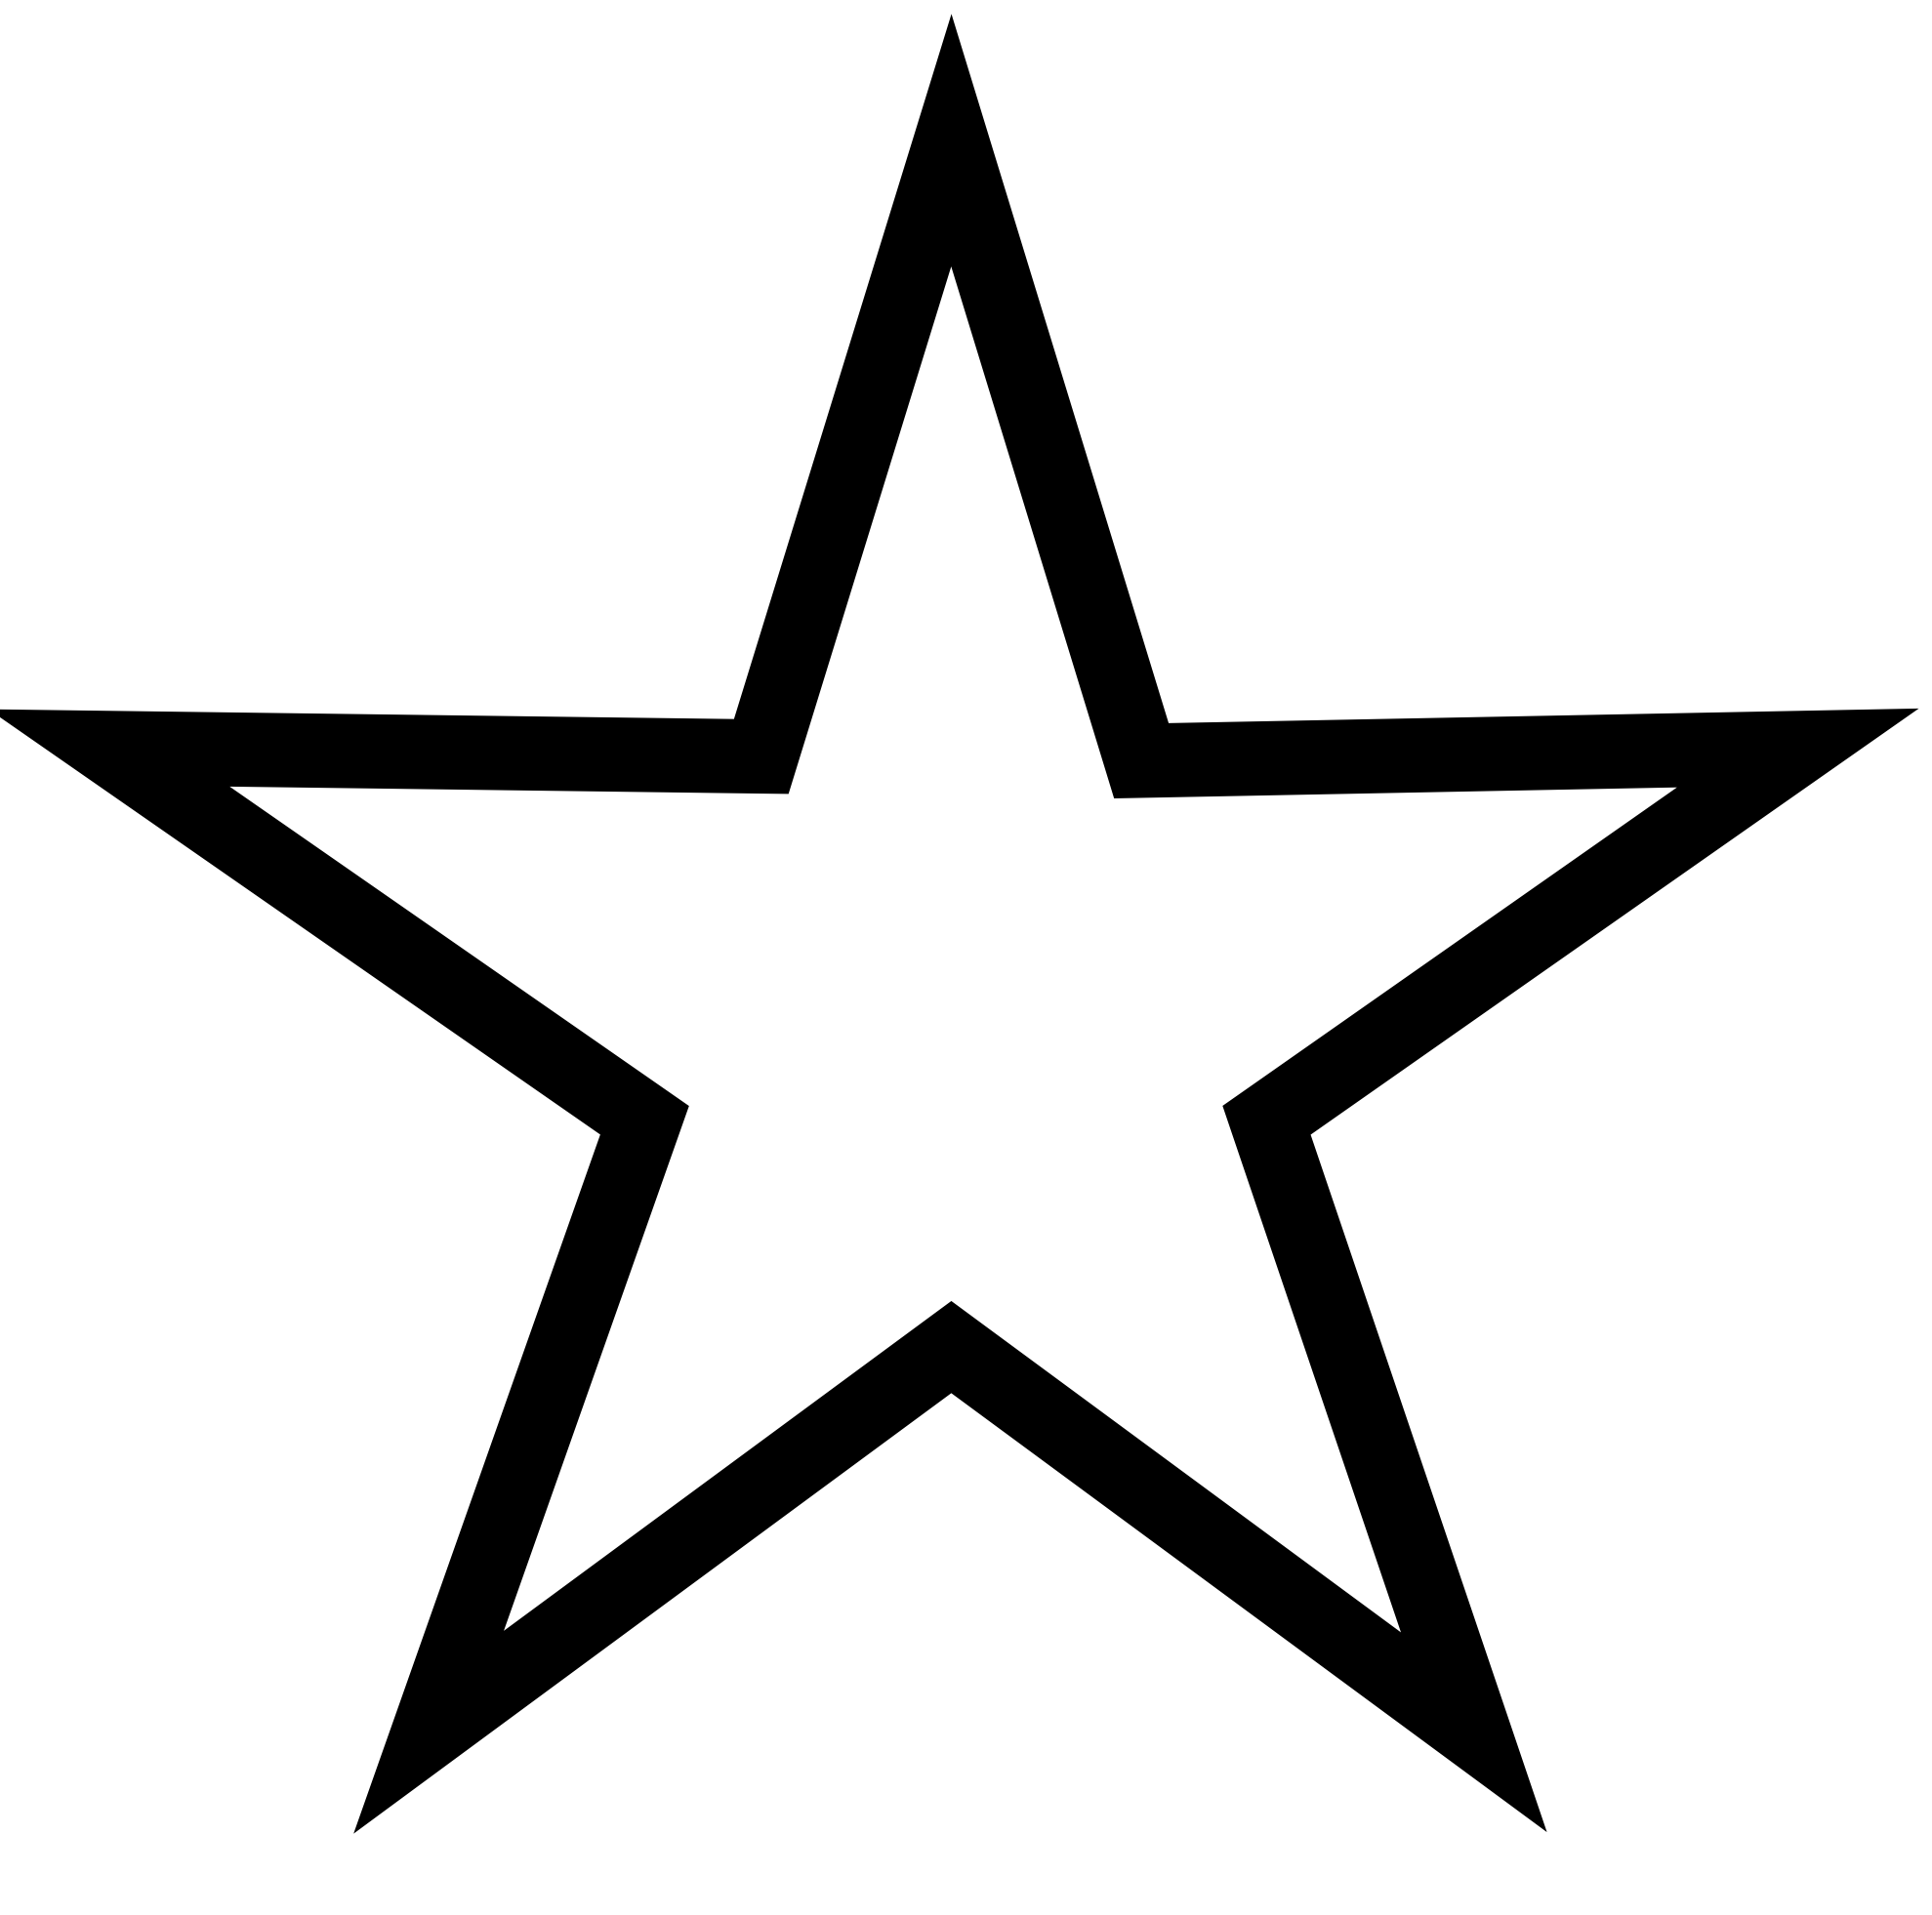 1979x1962 Star Black And White Star Black And White Parrot Clipart Free